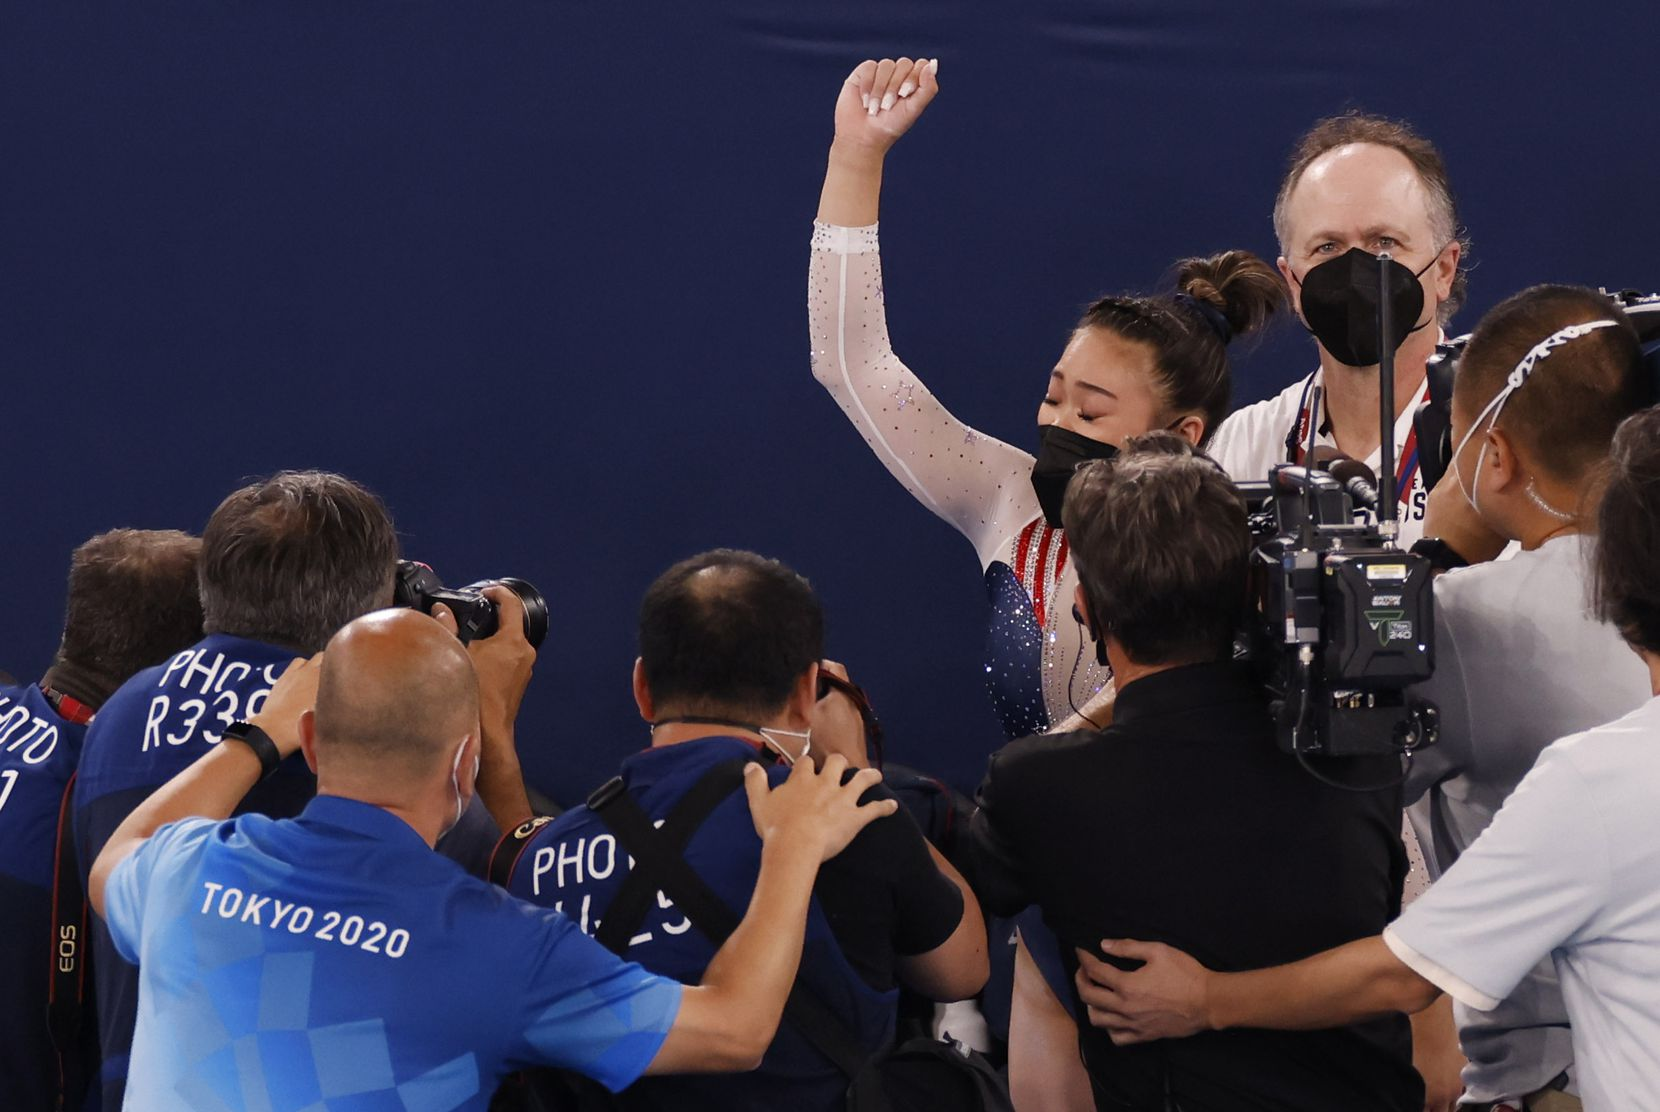 USA's Sunisa Lee celebrates after winning gold in the women's all-around final at the postponed 2020 Tokyo Olympics at Ariake Gymnastics Centre, on Thursday, July 29, 2021, in Tokyo, Japan. (Vernon Bryant/The Dallas Morning News)